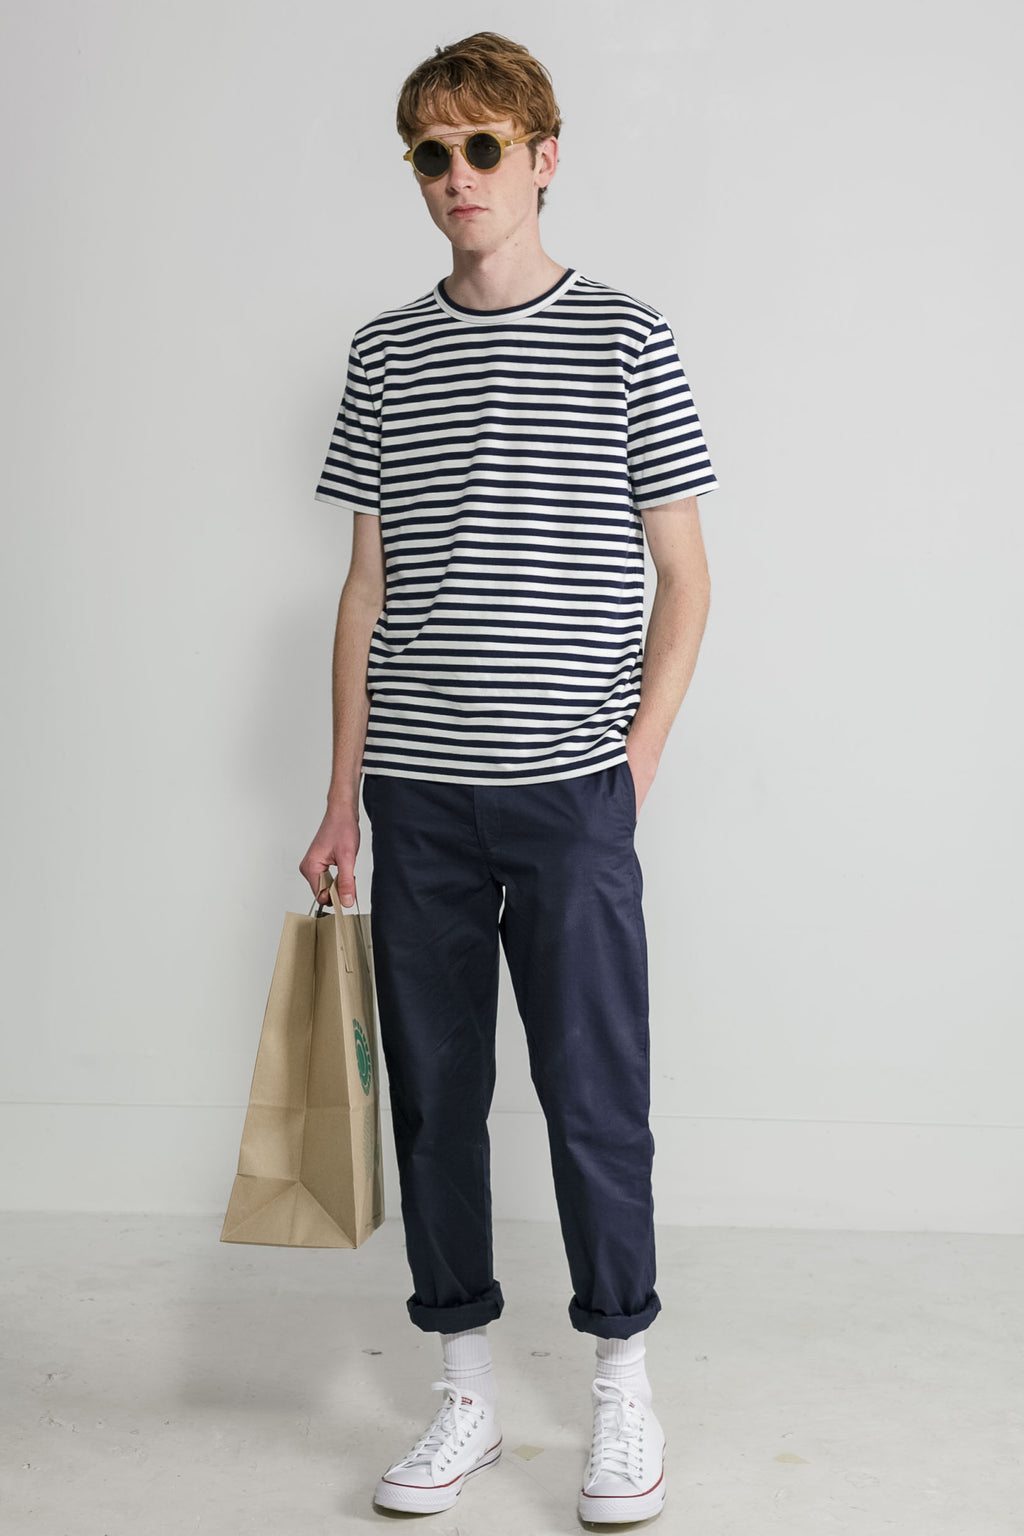 Marine Stripe Crew in Navy and White 001